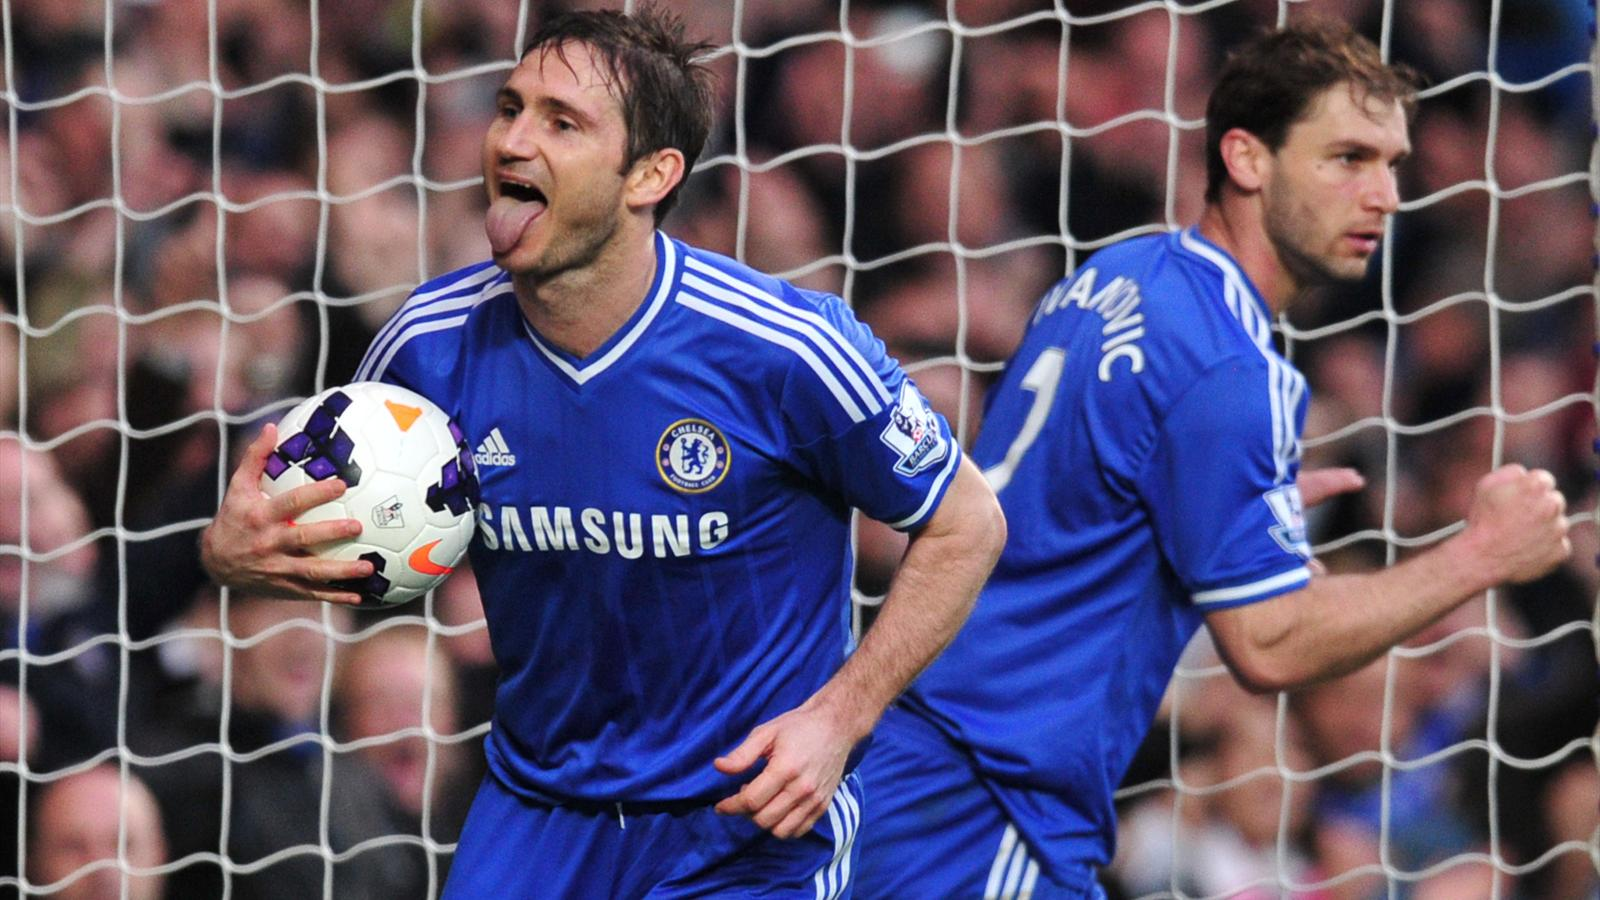 Frank Lampard celebrates scoring for Chelsea against Stoke (AFP)